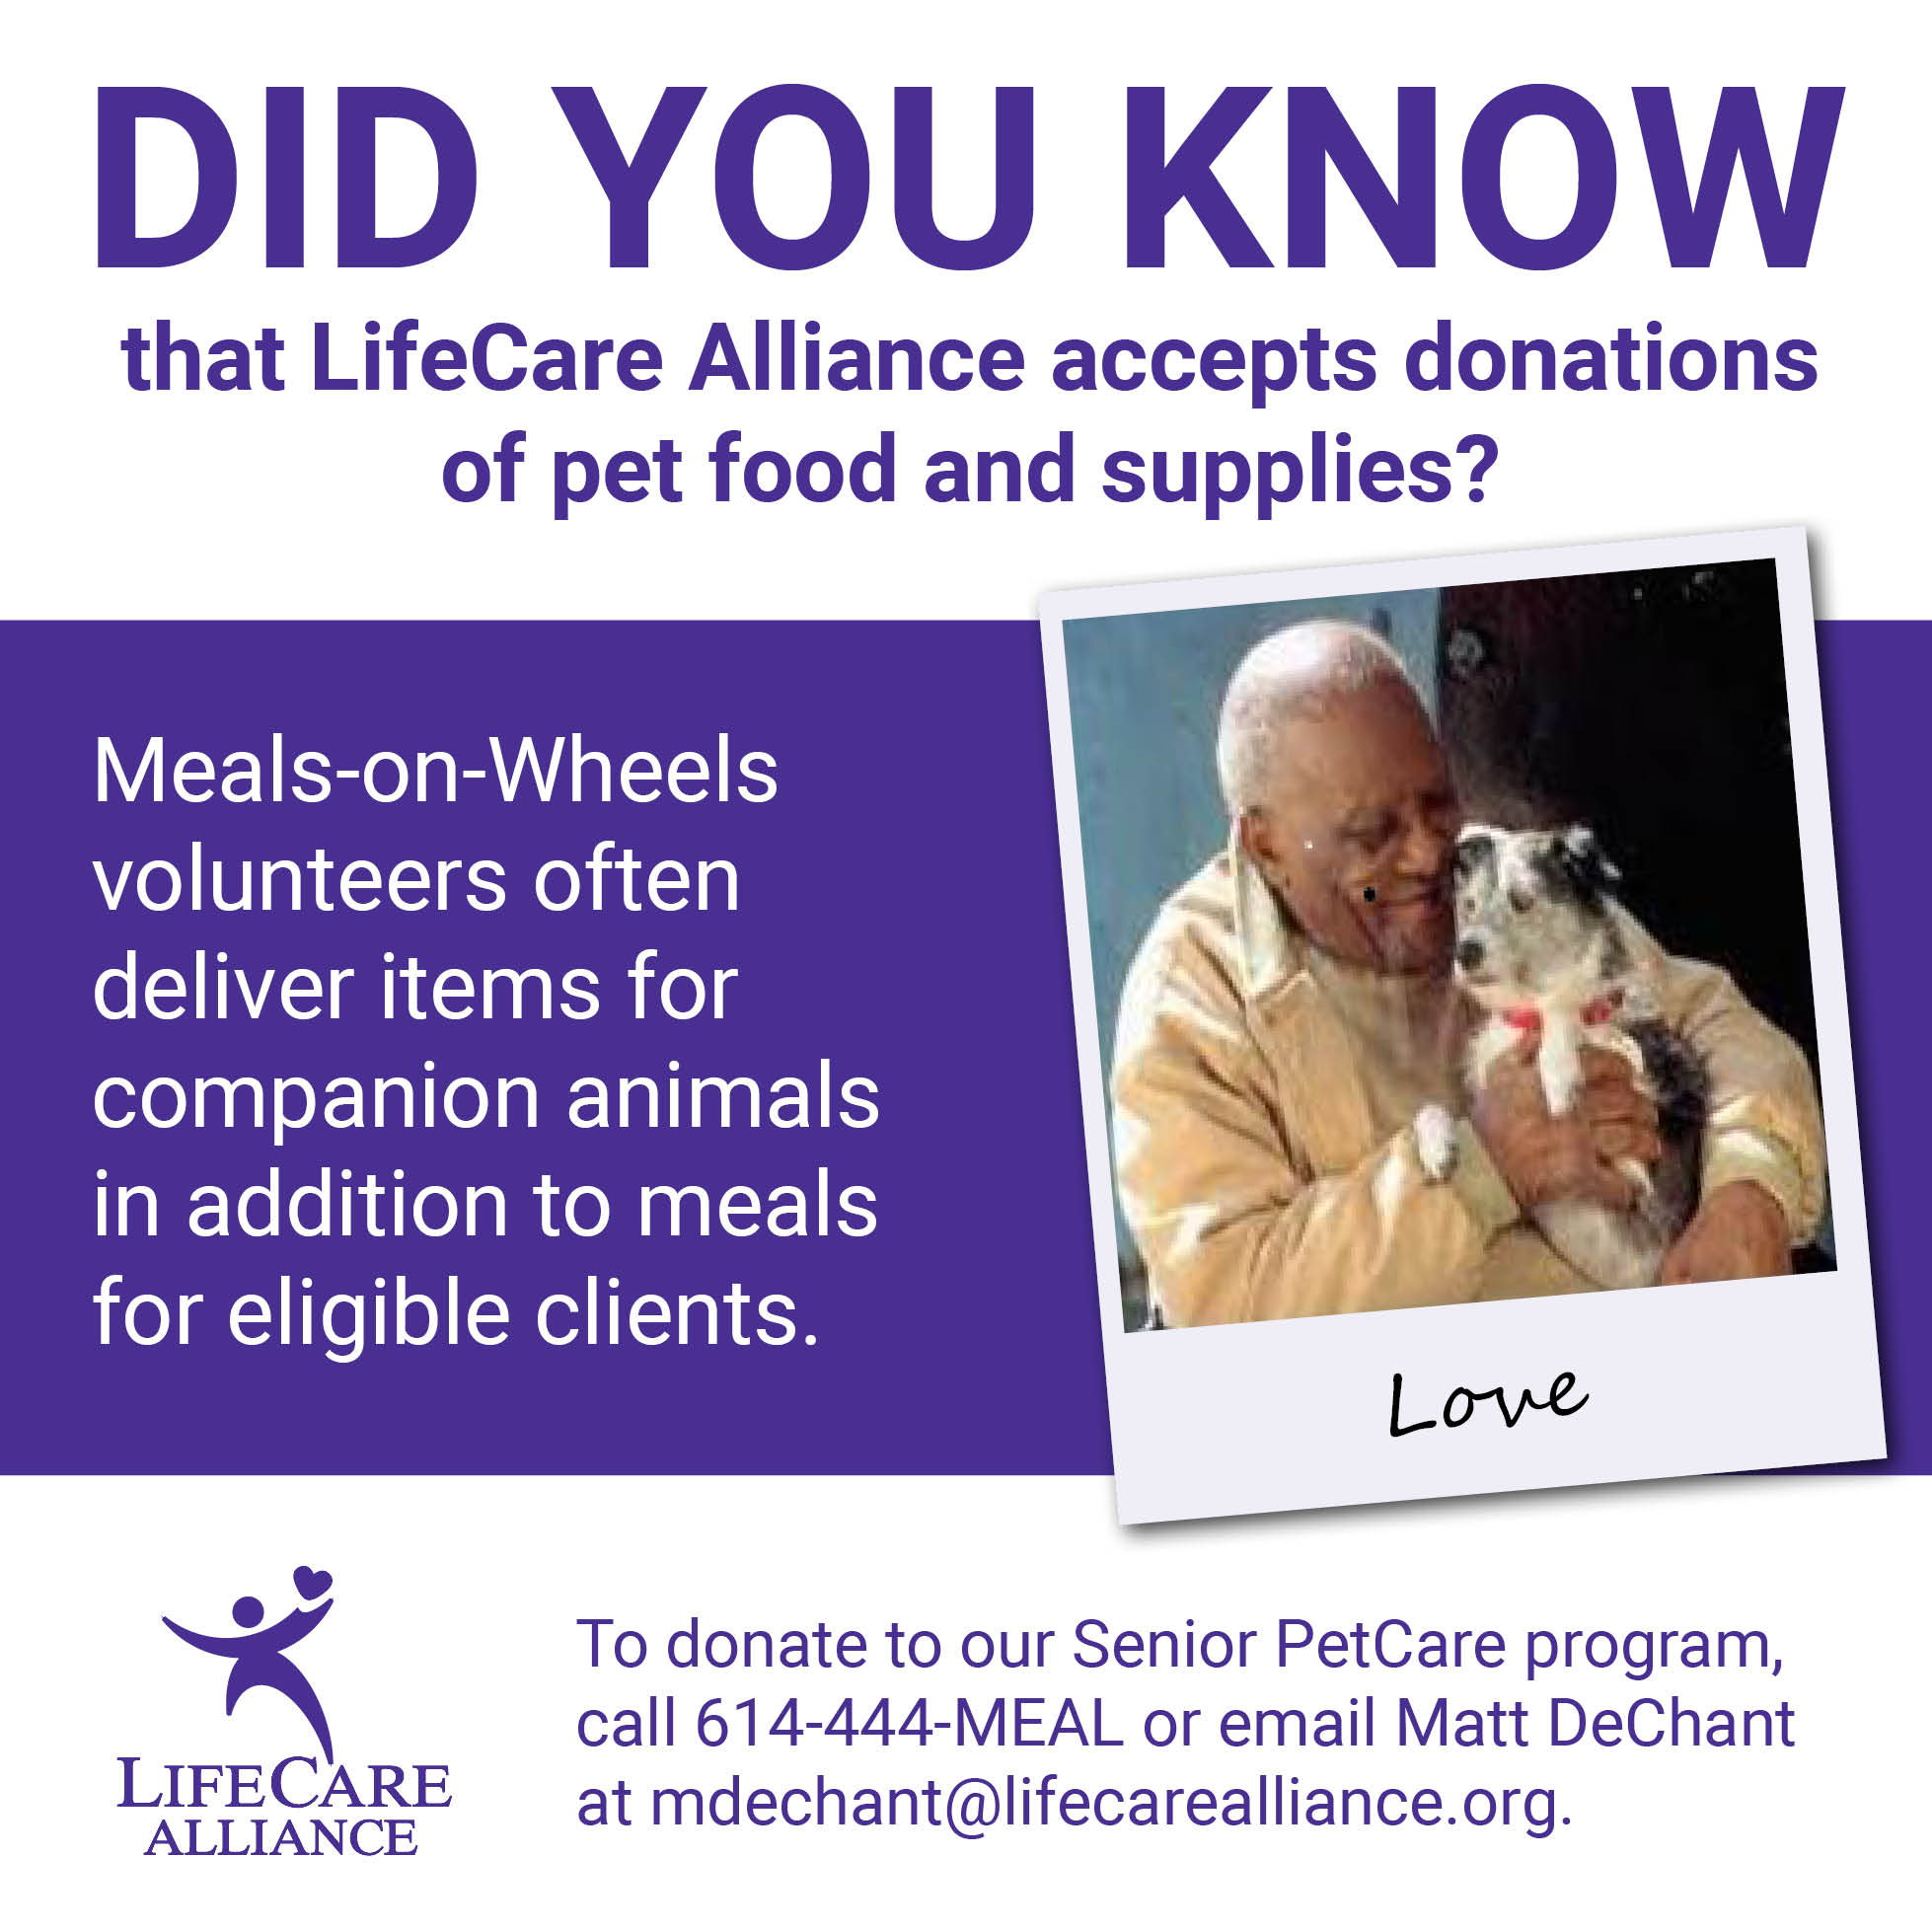 Volunteers deliver pet food to eligible clients.